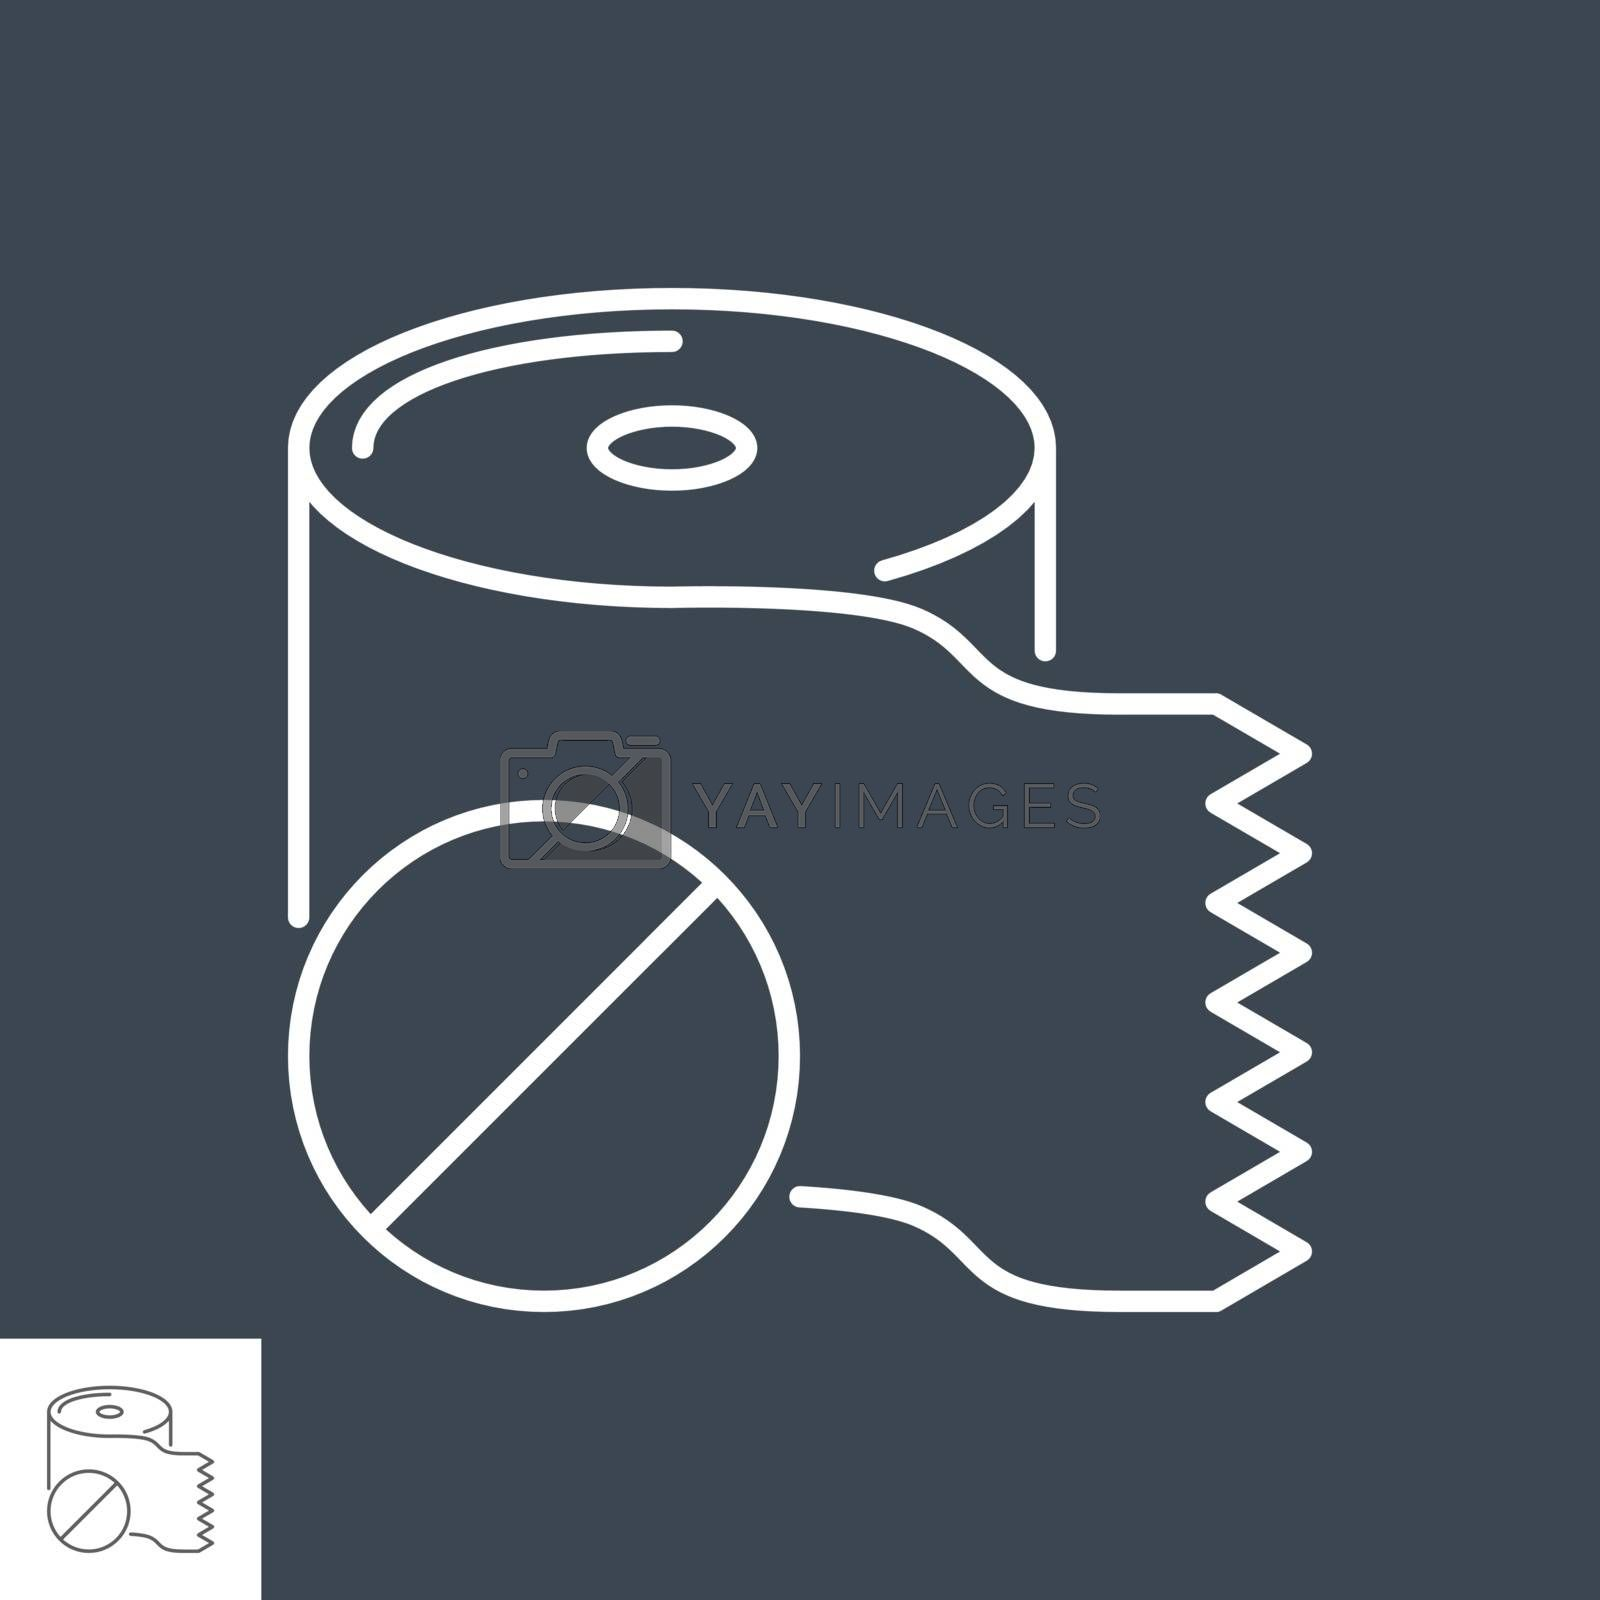 Toilet paper related vector thin line icon. Toilet paper with a prohibition sign. Isolated on black background. Editable stroke. Vector illustration.